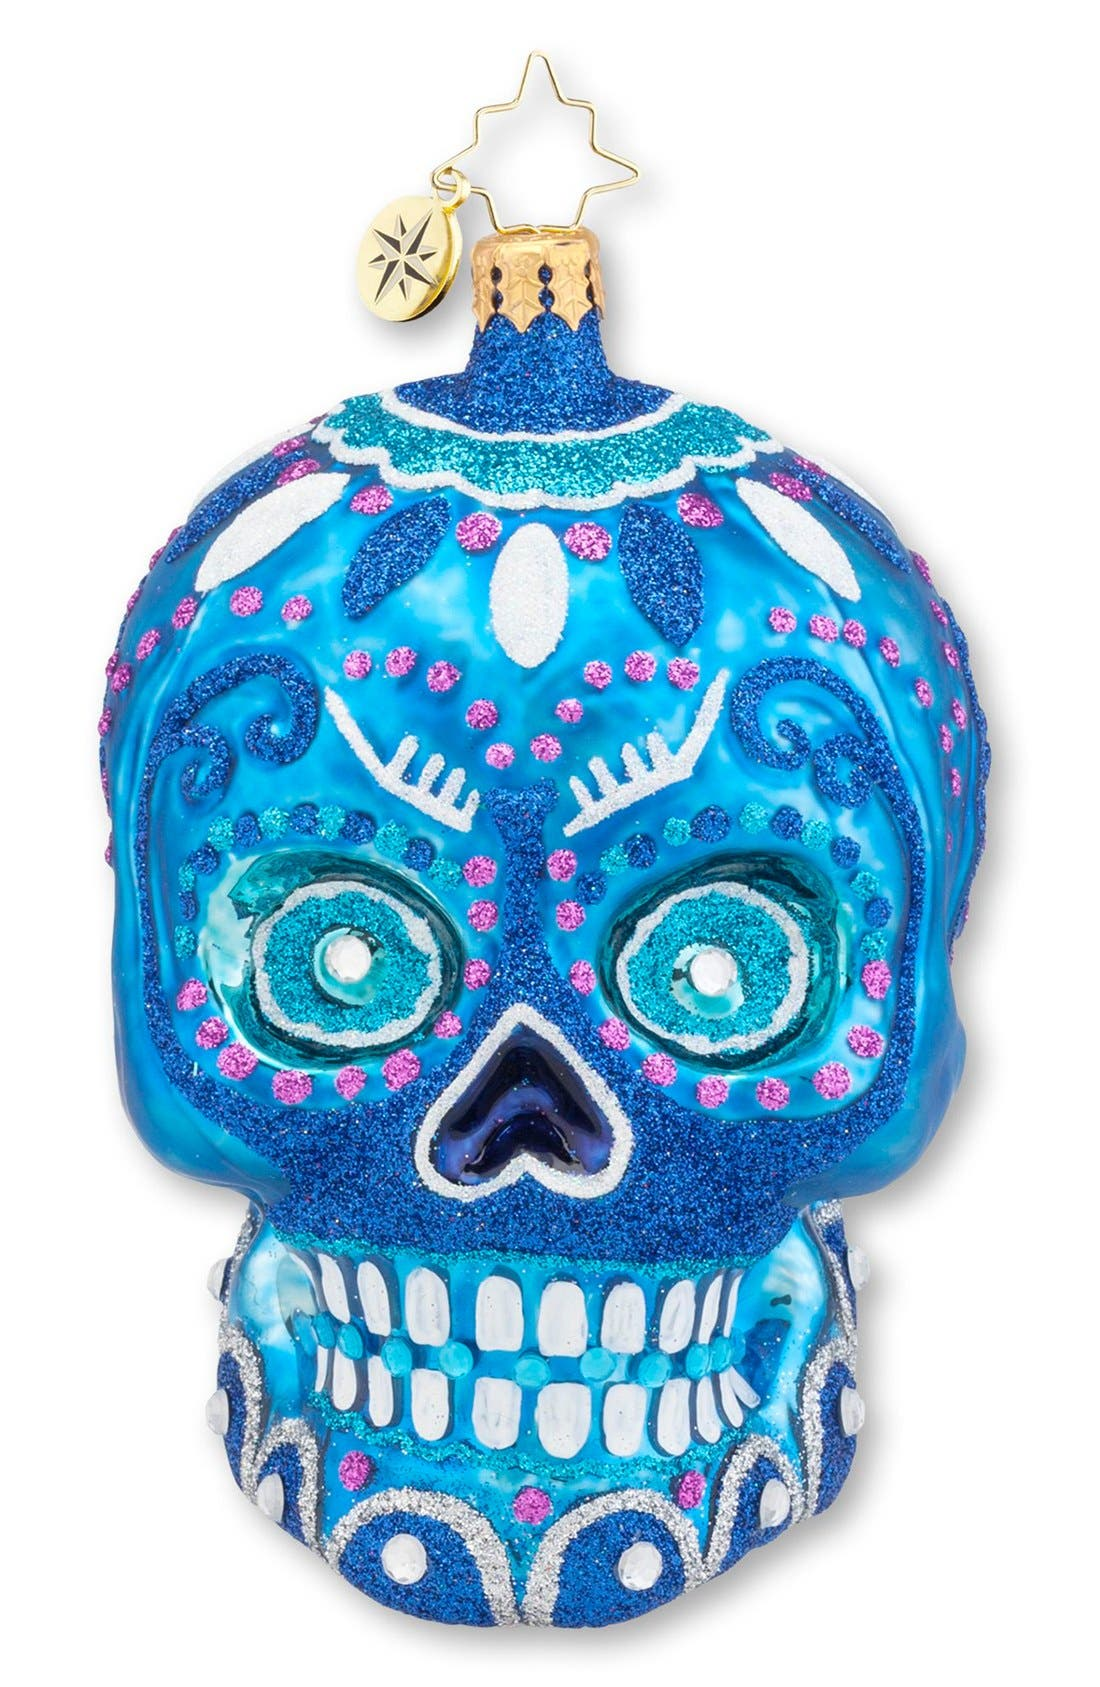 Main Image - Christopher Radko 'La Calavera' Skull Ornament